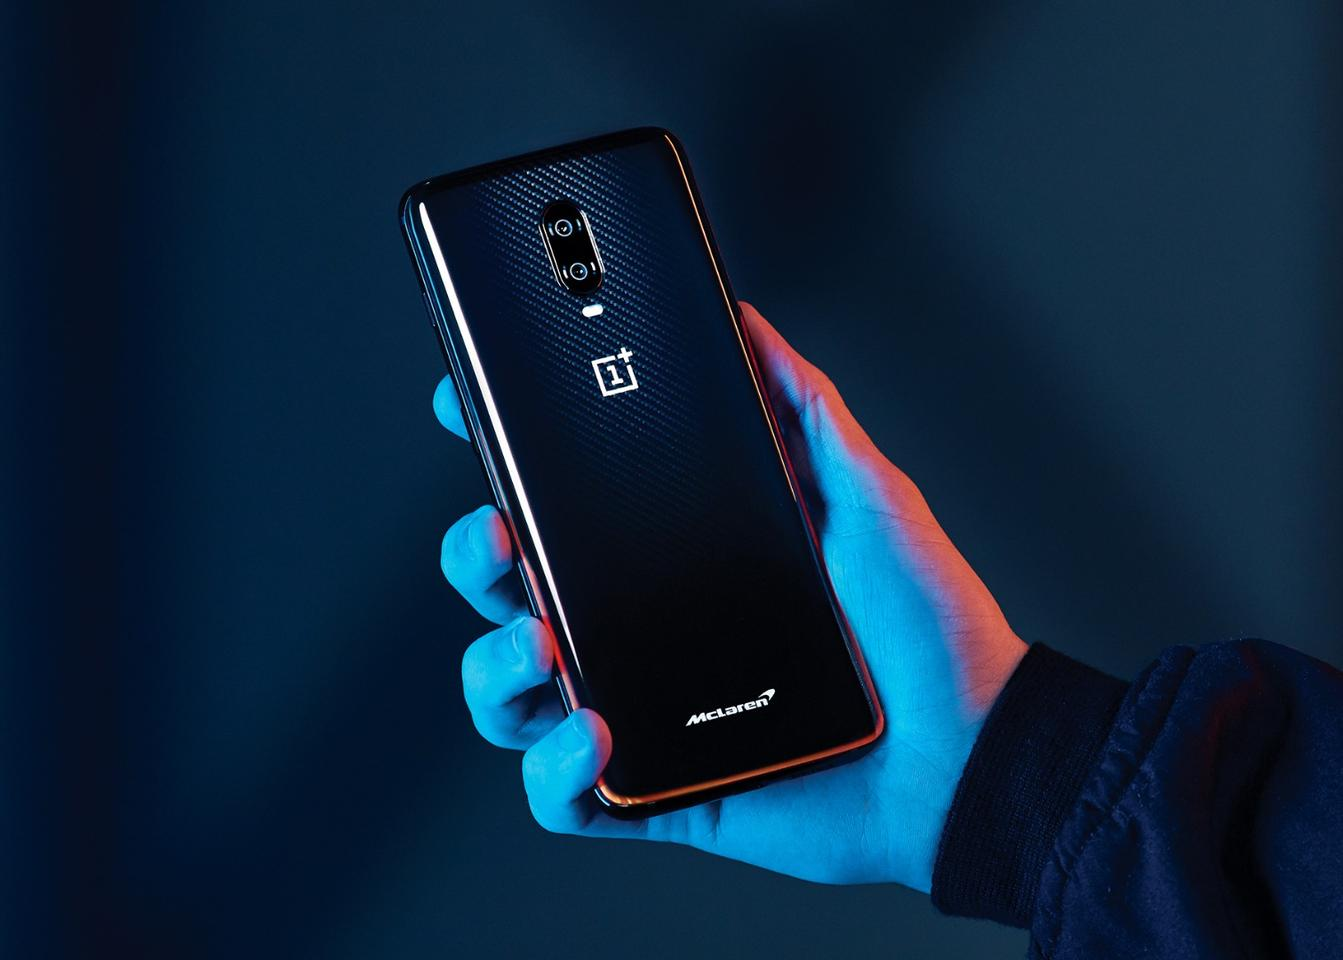 OnePlus adds supercar style and faster charging with the 6T